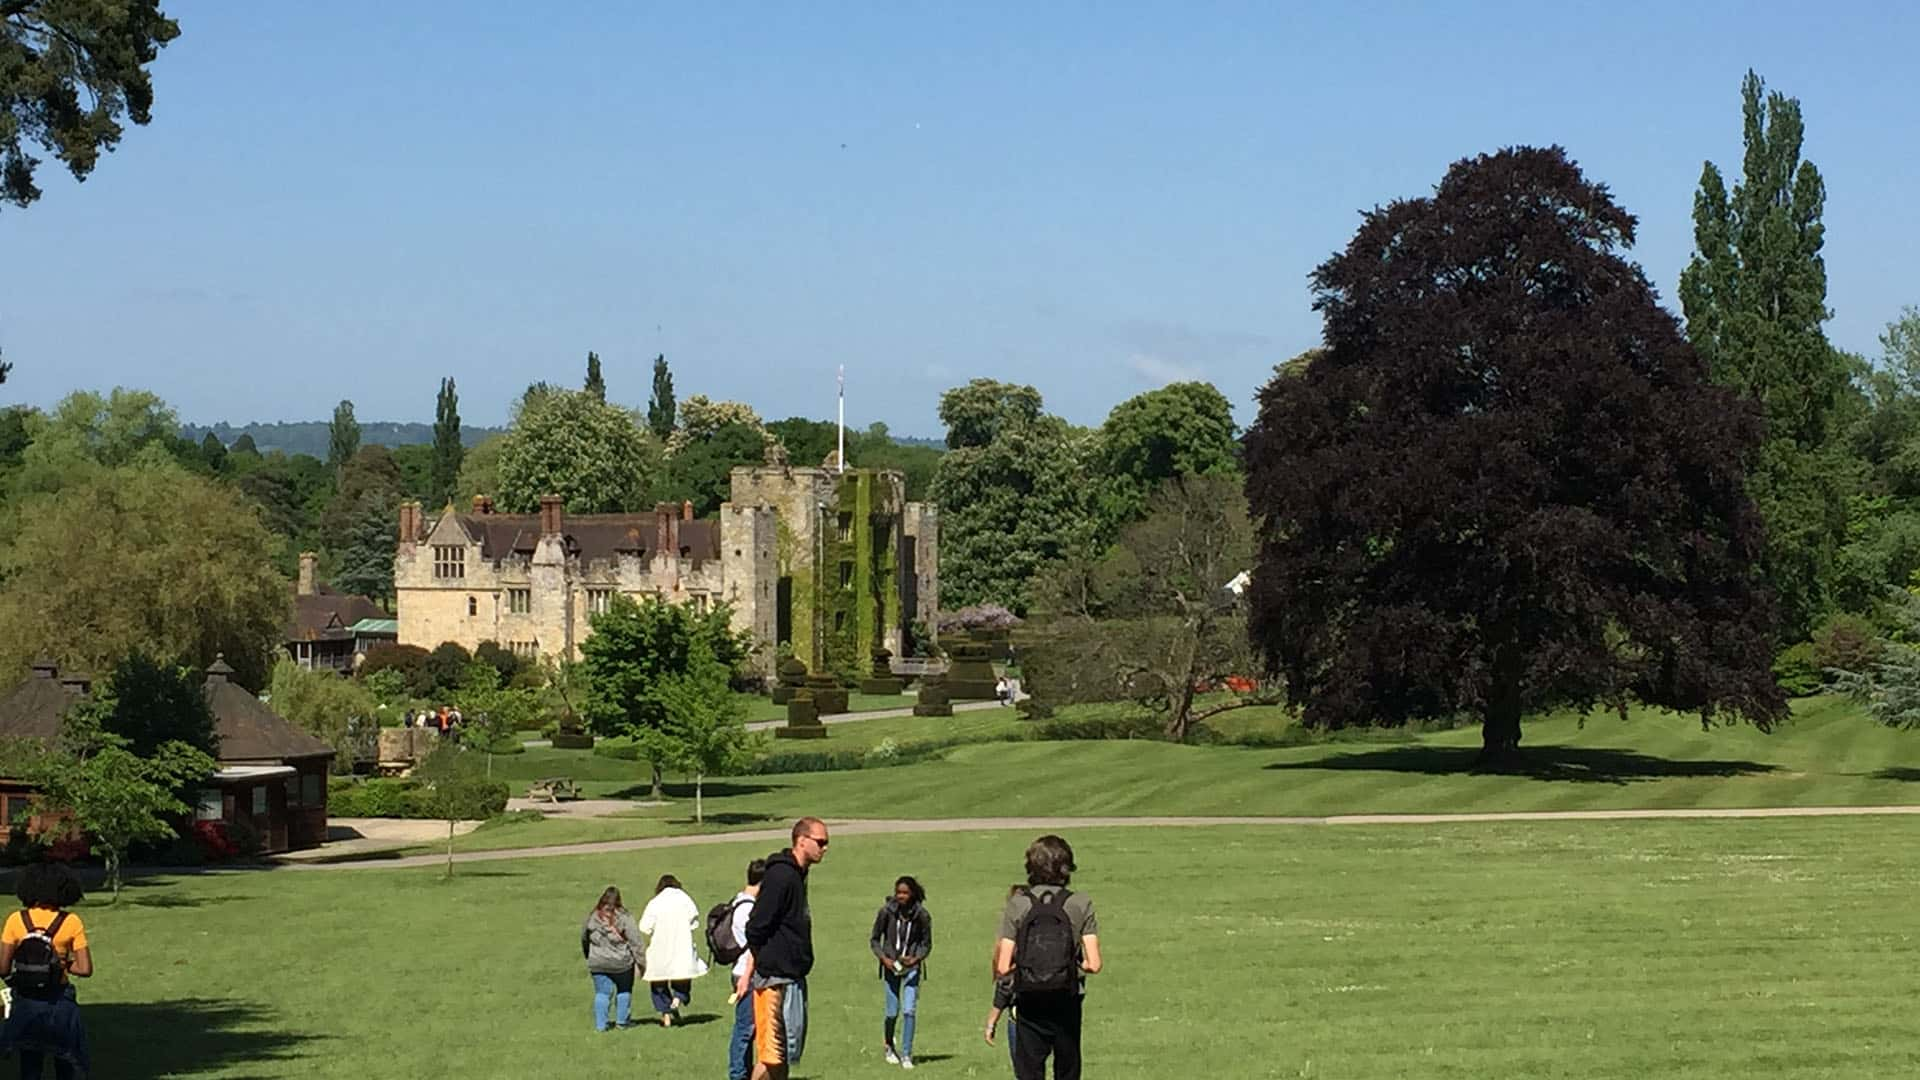 Hever Castle from a Distance